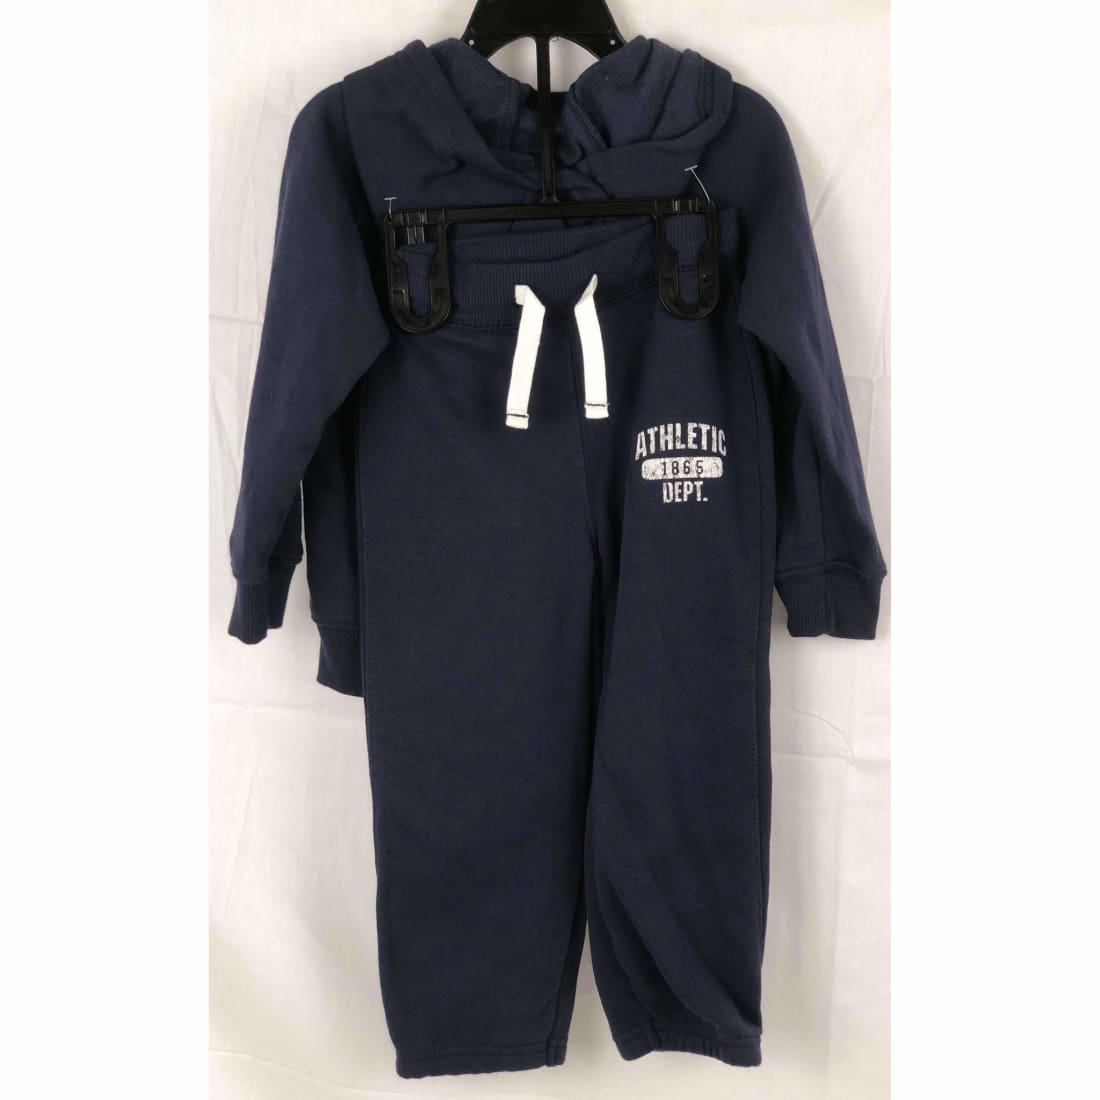 Carters Girls 2 Piece Full Zip Hoodie And Jogger Athletic Apparel